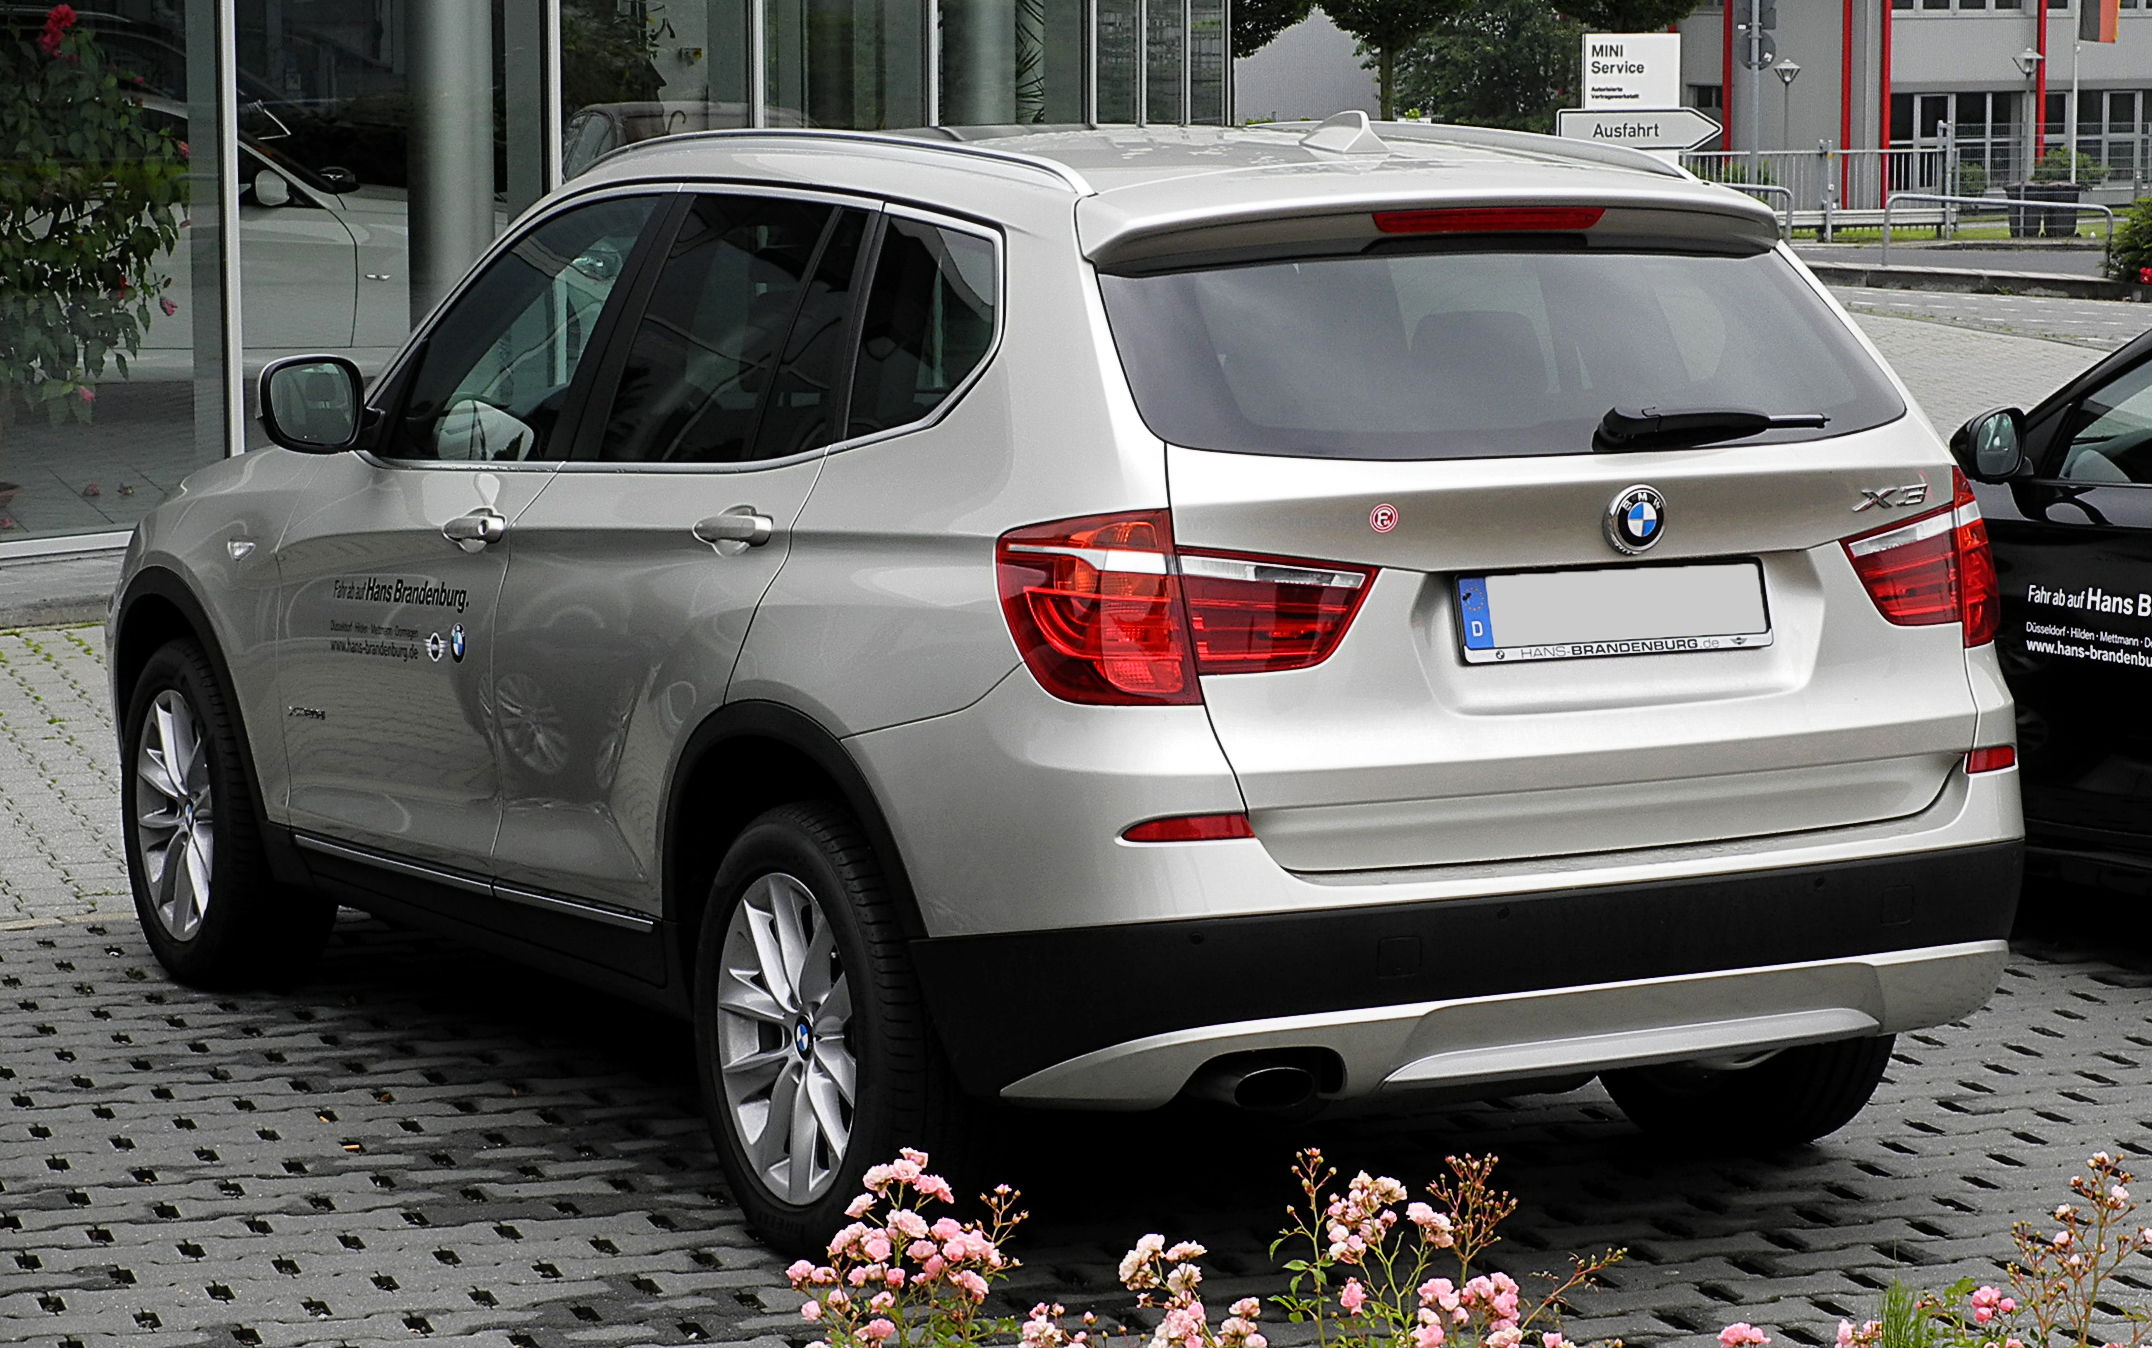 file bmw x3 xdrive20d f25 heckansicht 26 juni 2011 wikimedia commons. Black Bedroom Furniture Sets. Home Design Ideas